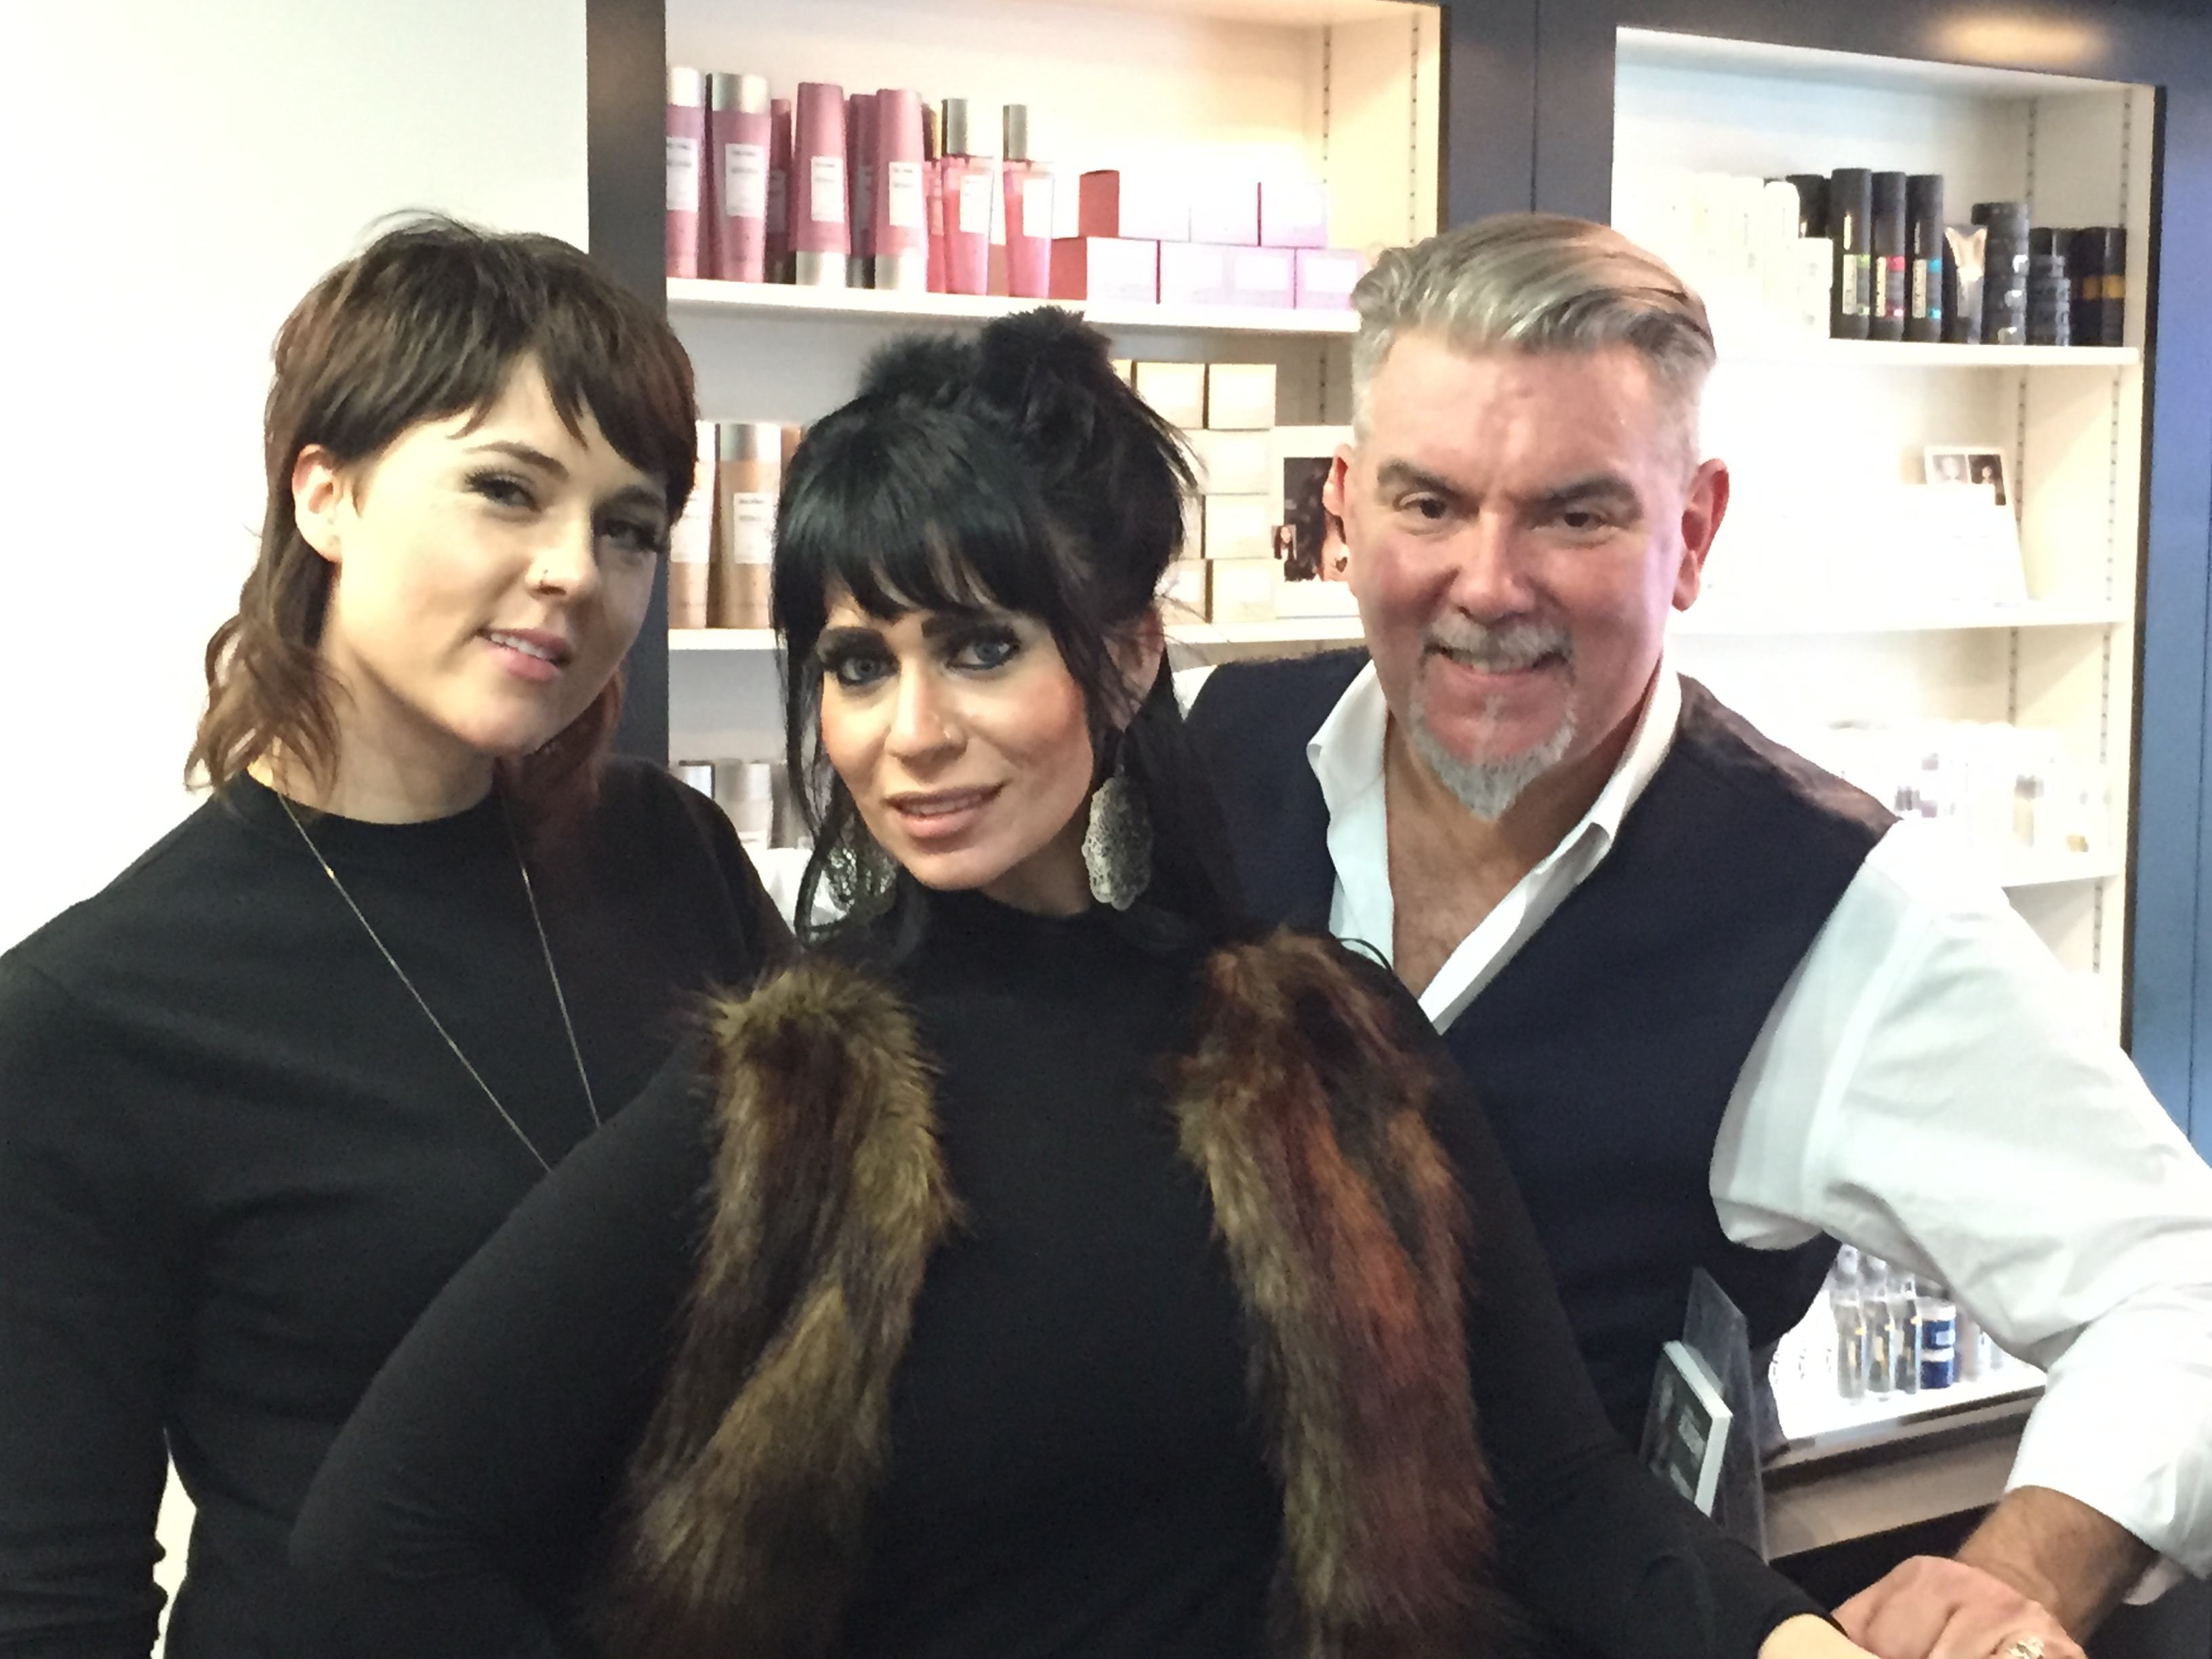 Corinne Brown, Harley LoBasso and John Moroney, the VP & Global Creative Director of KAO Global Salon Division (photo credit:  Corinne Brown, Harley LoBasso and John Moroney, the VP & Global Creative Director of KAO Global Salon Division)